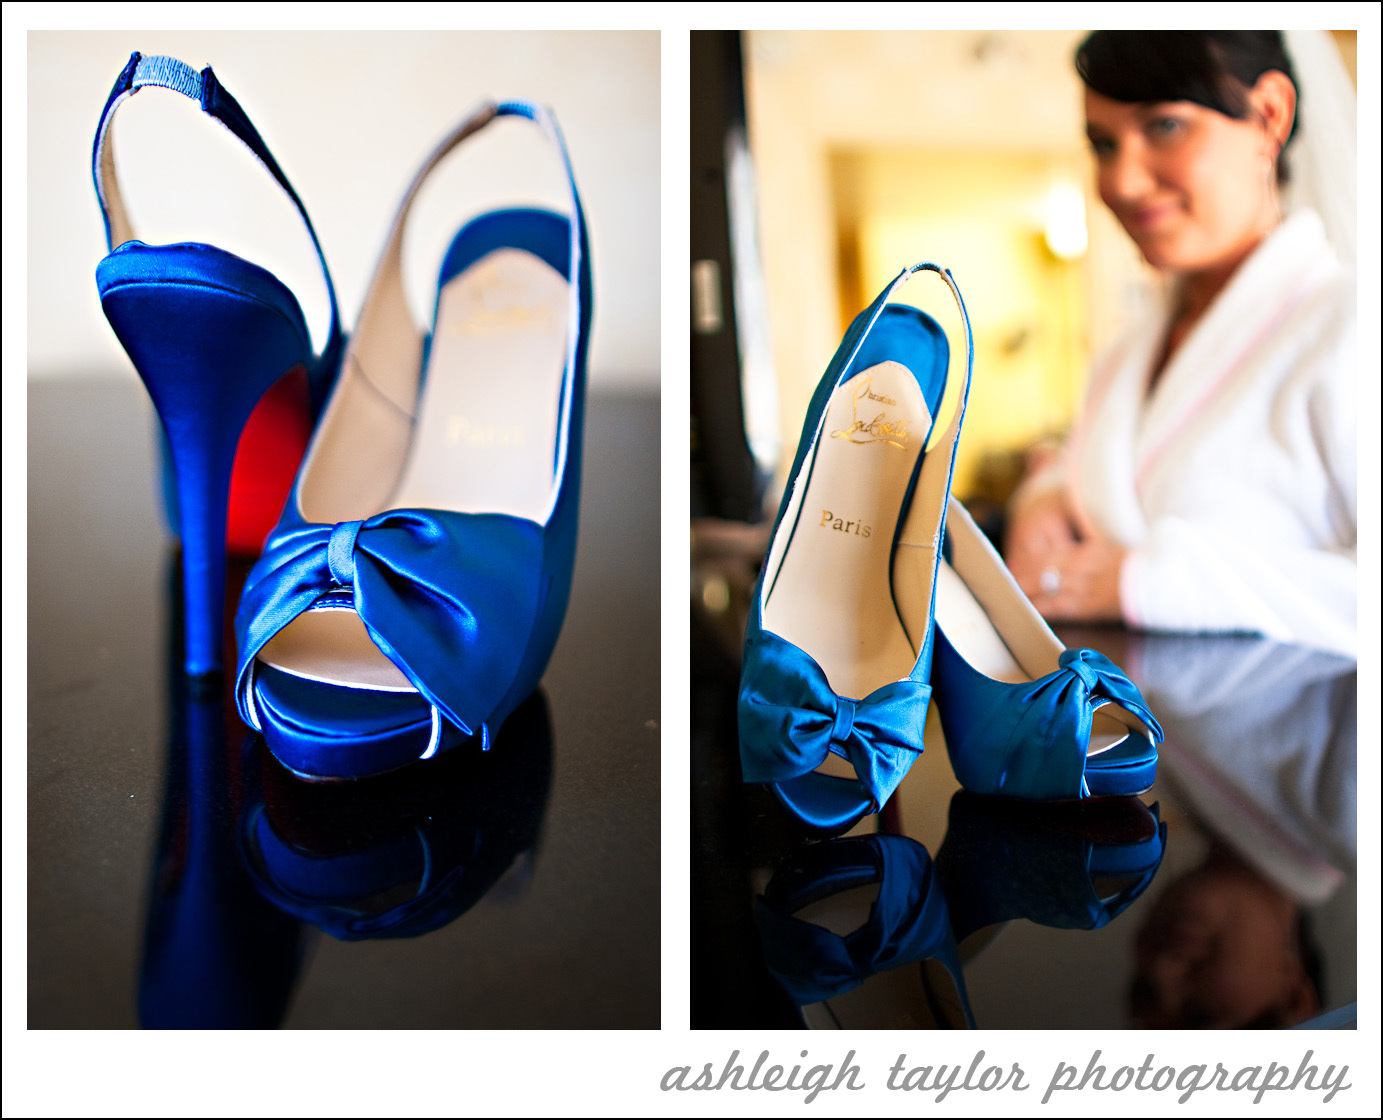 Shoes, Fashion, blue, Christian, Something, Louboutin, Ashleigh taylor photography